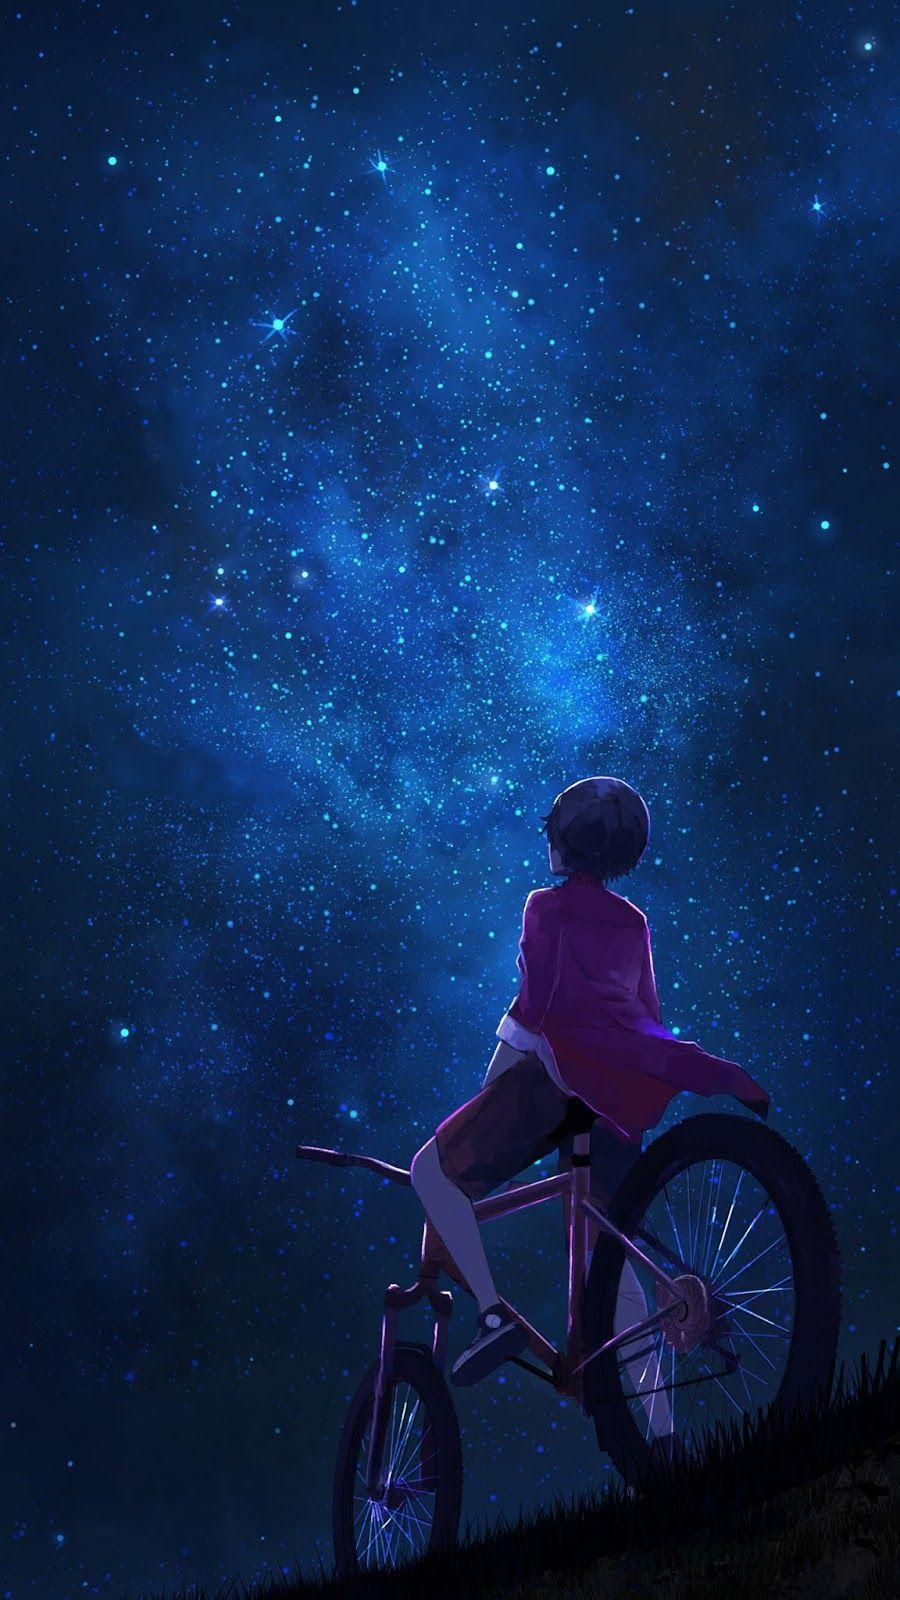 Night Sky Android Anime Wallpapers Wallpaper Cave